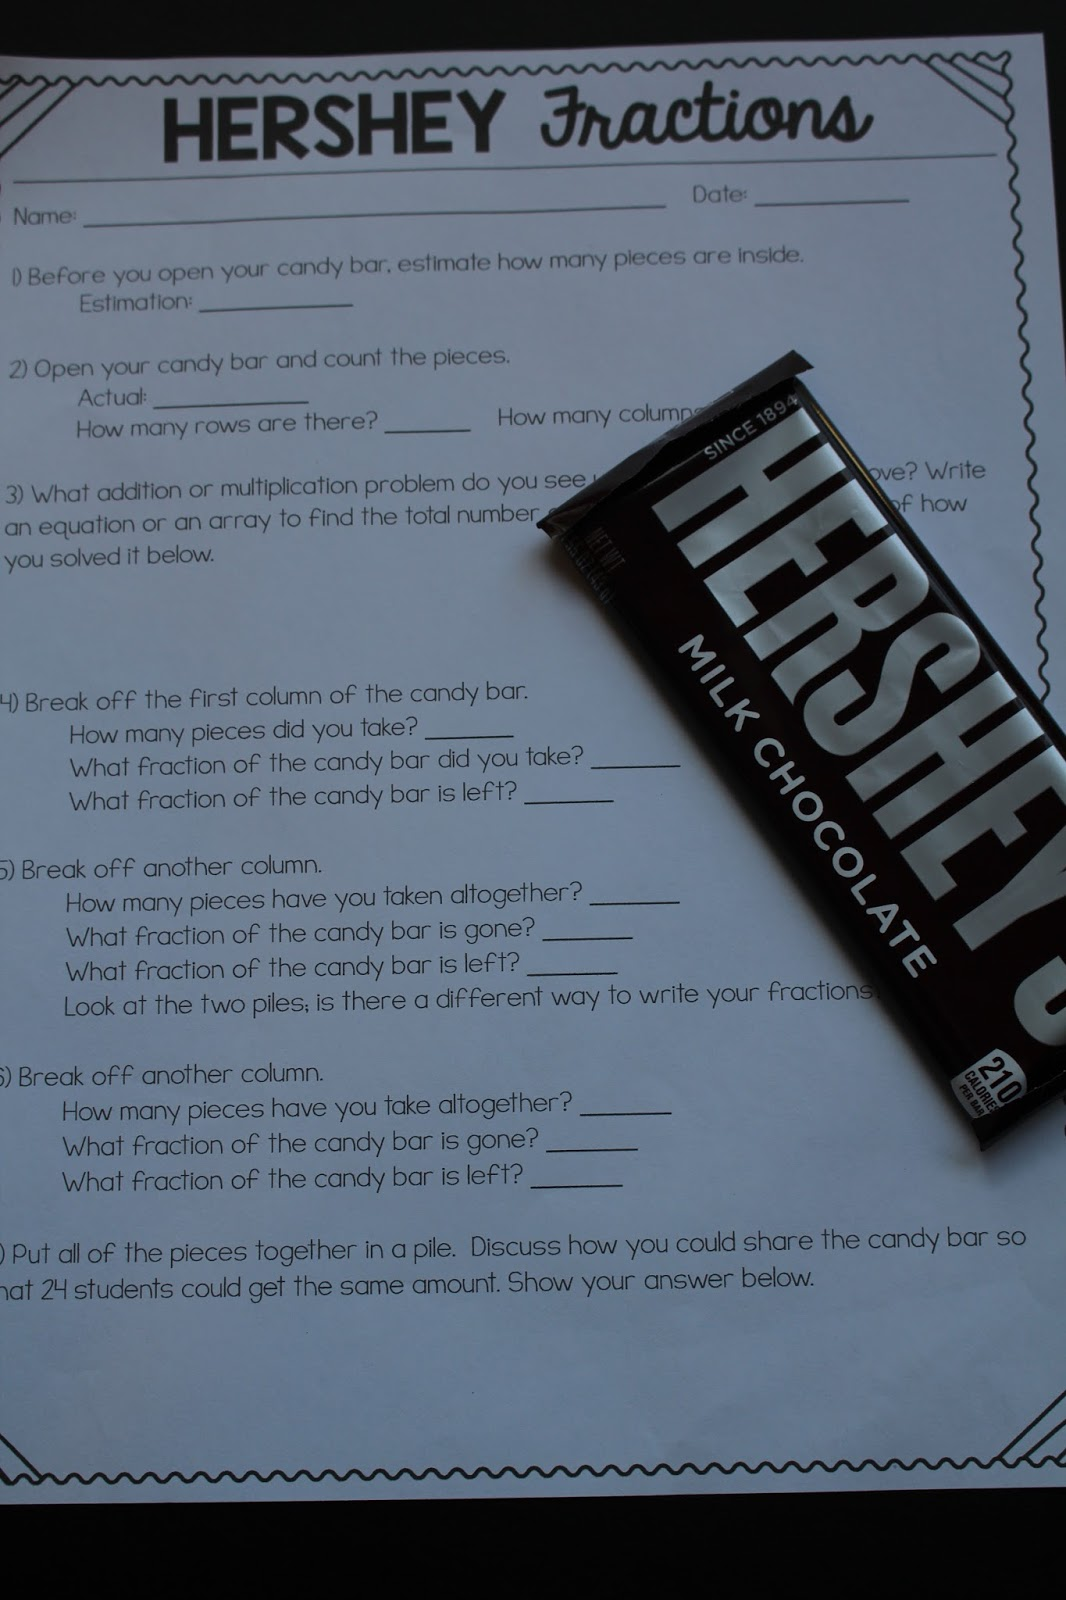 I found a great free printable at  https://www.teacherspayteachers.com/FreeDownload/Hershey-Fraction-Worksheet,  which uses a Hershey's milk chocolate bar to ...